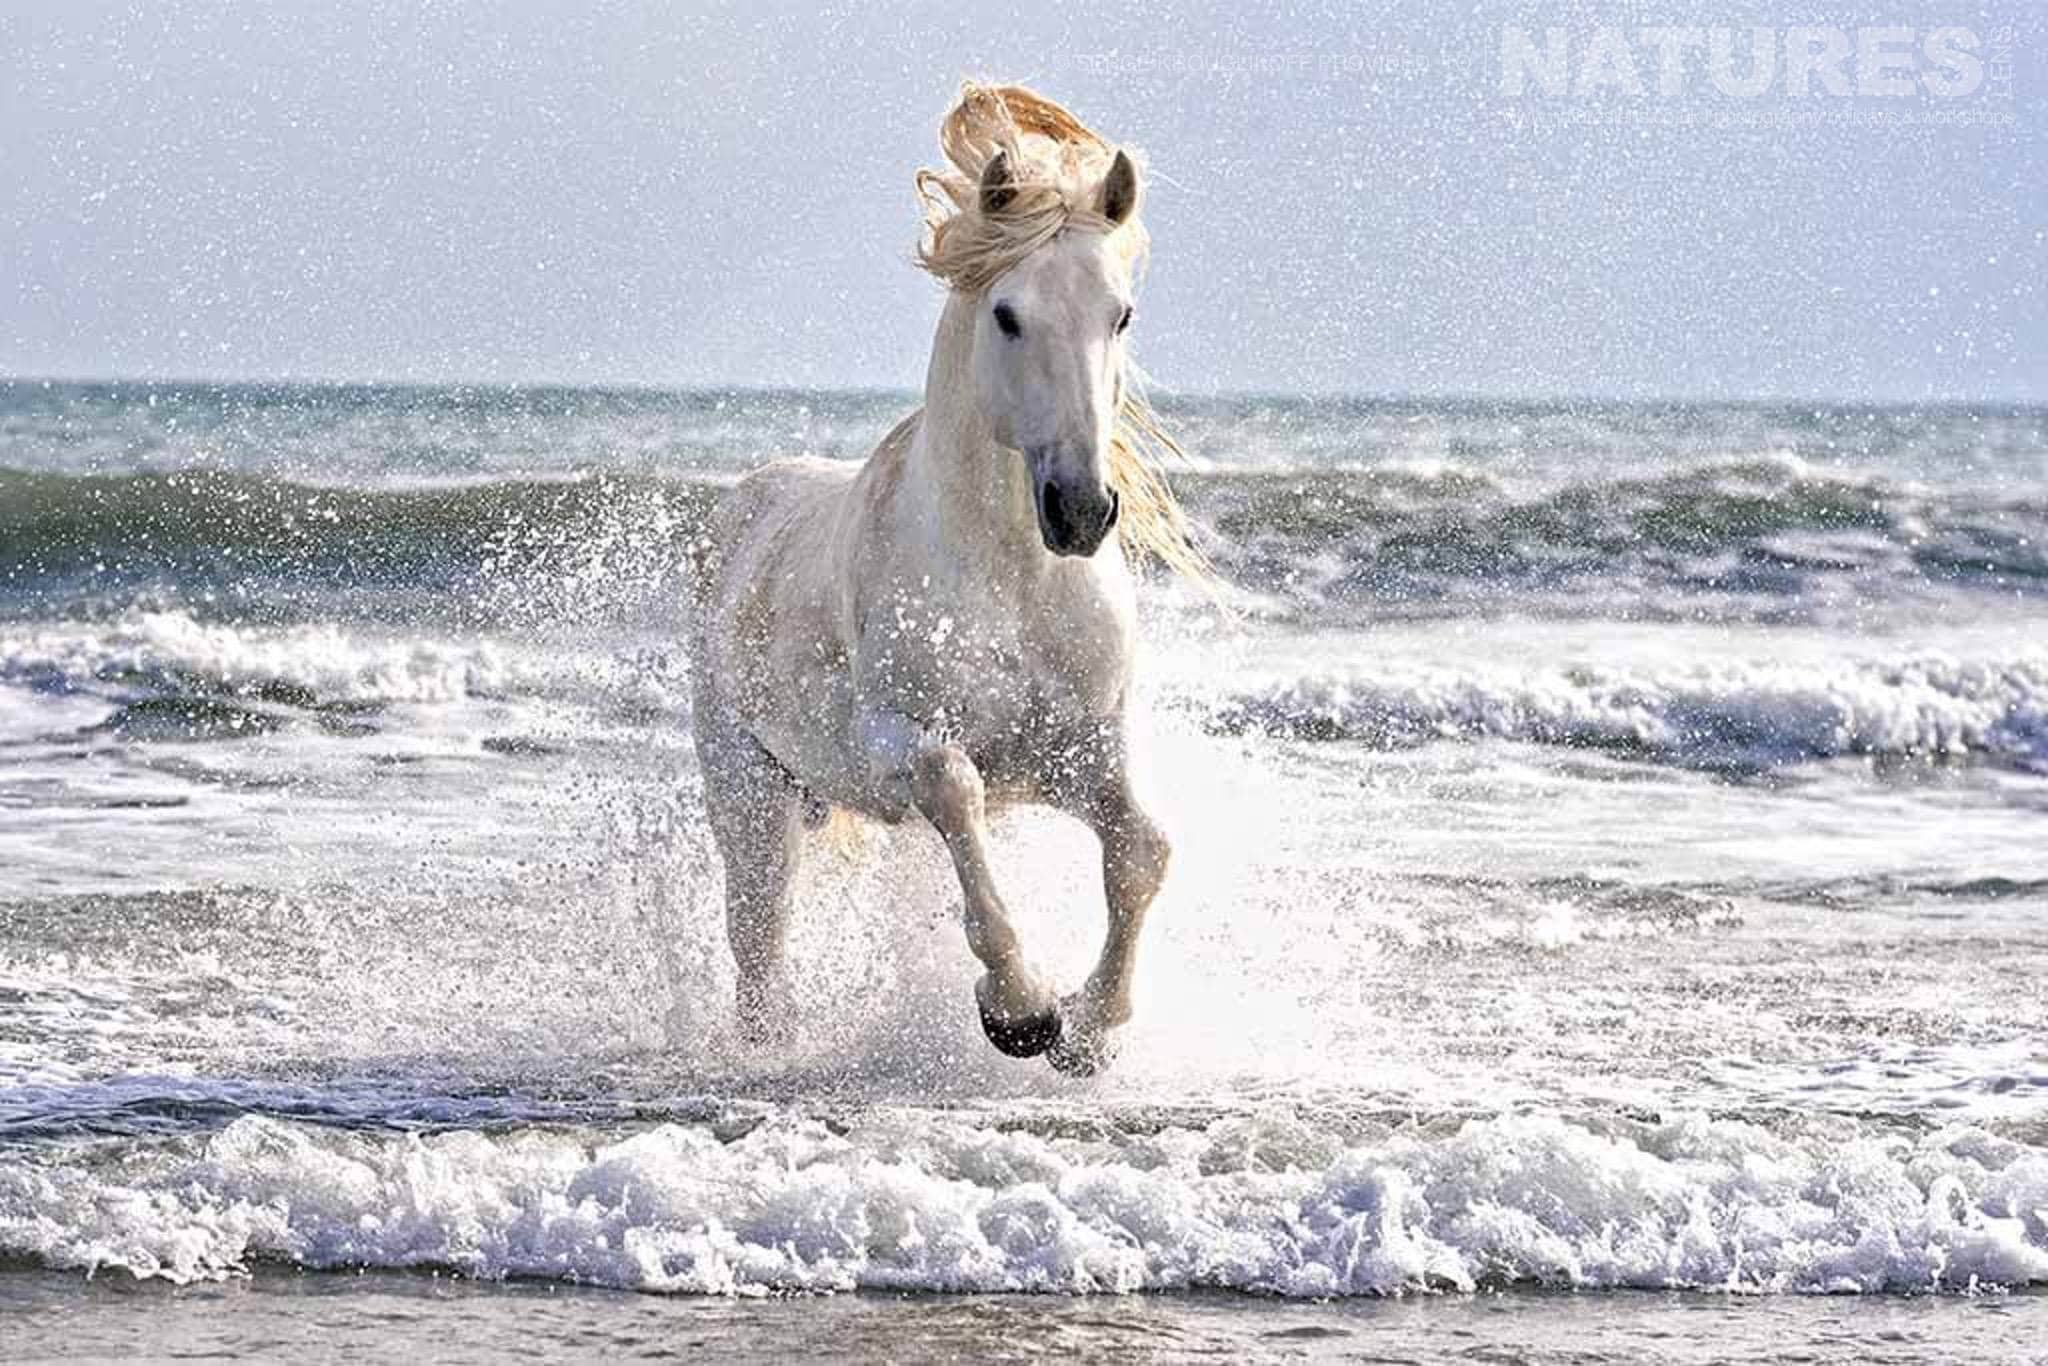 A lone white horse emerges from the surf typical of the type of image that may be captured during the NaturesLens Wild White Horses of the Camargue Photography Holiday